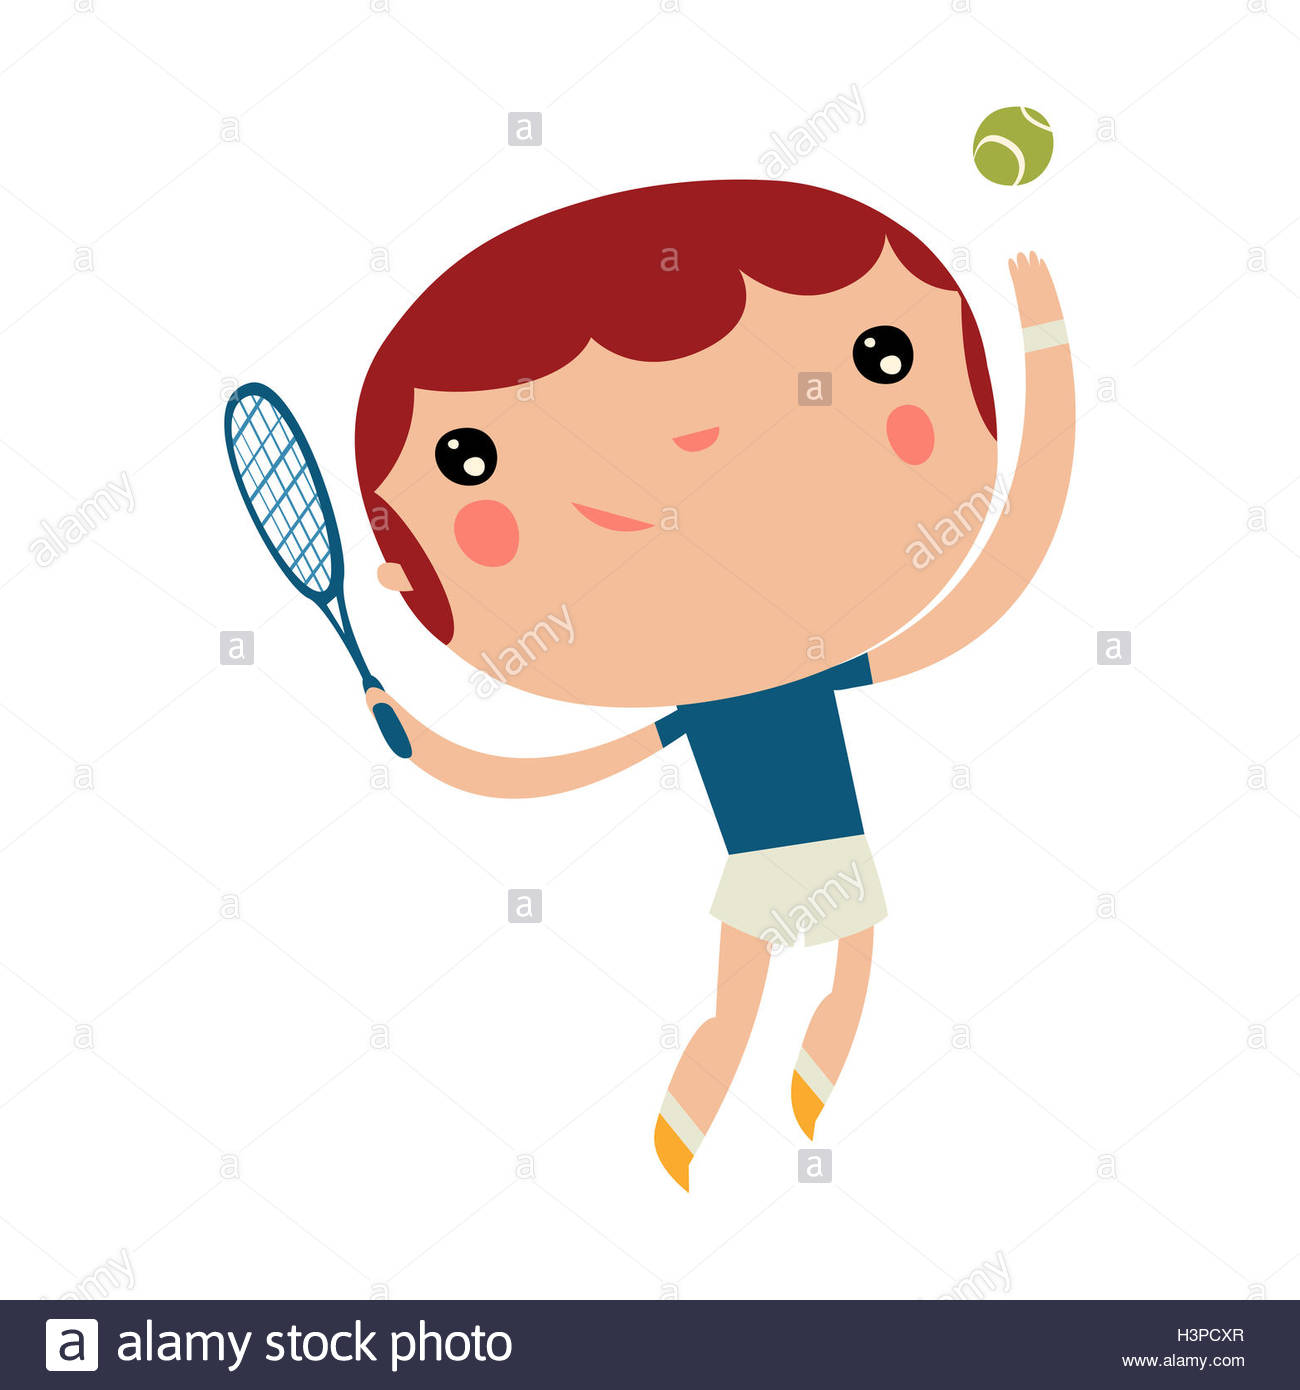 Cartoon Characters Playing Sports : Tennis player boy kids playing sports cute vector